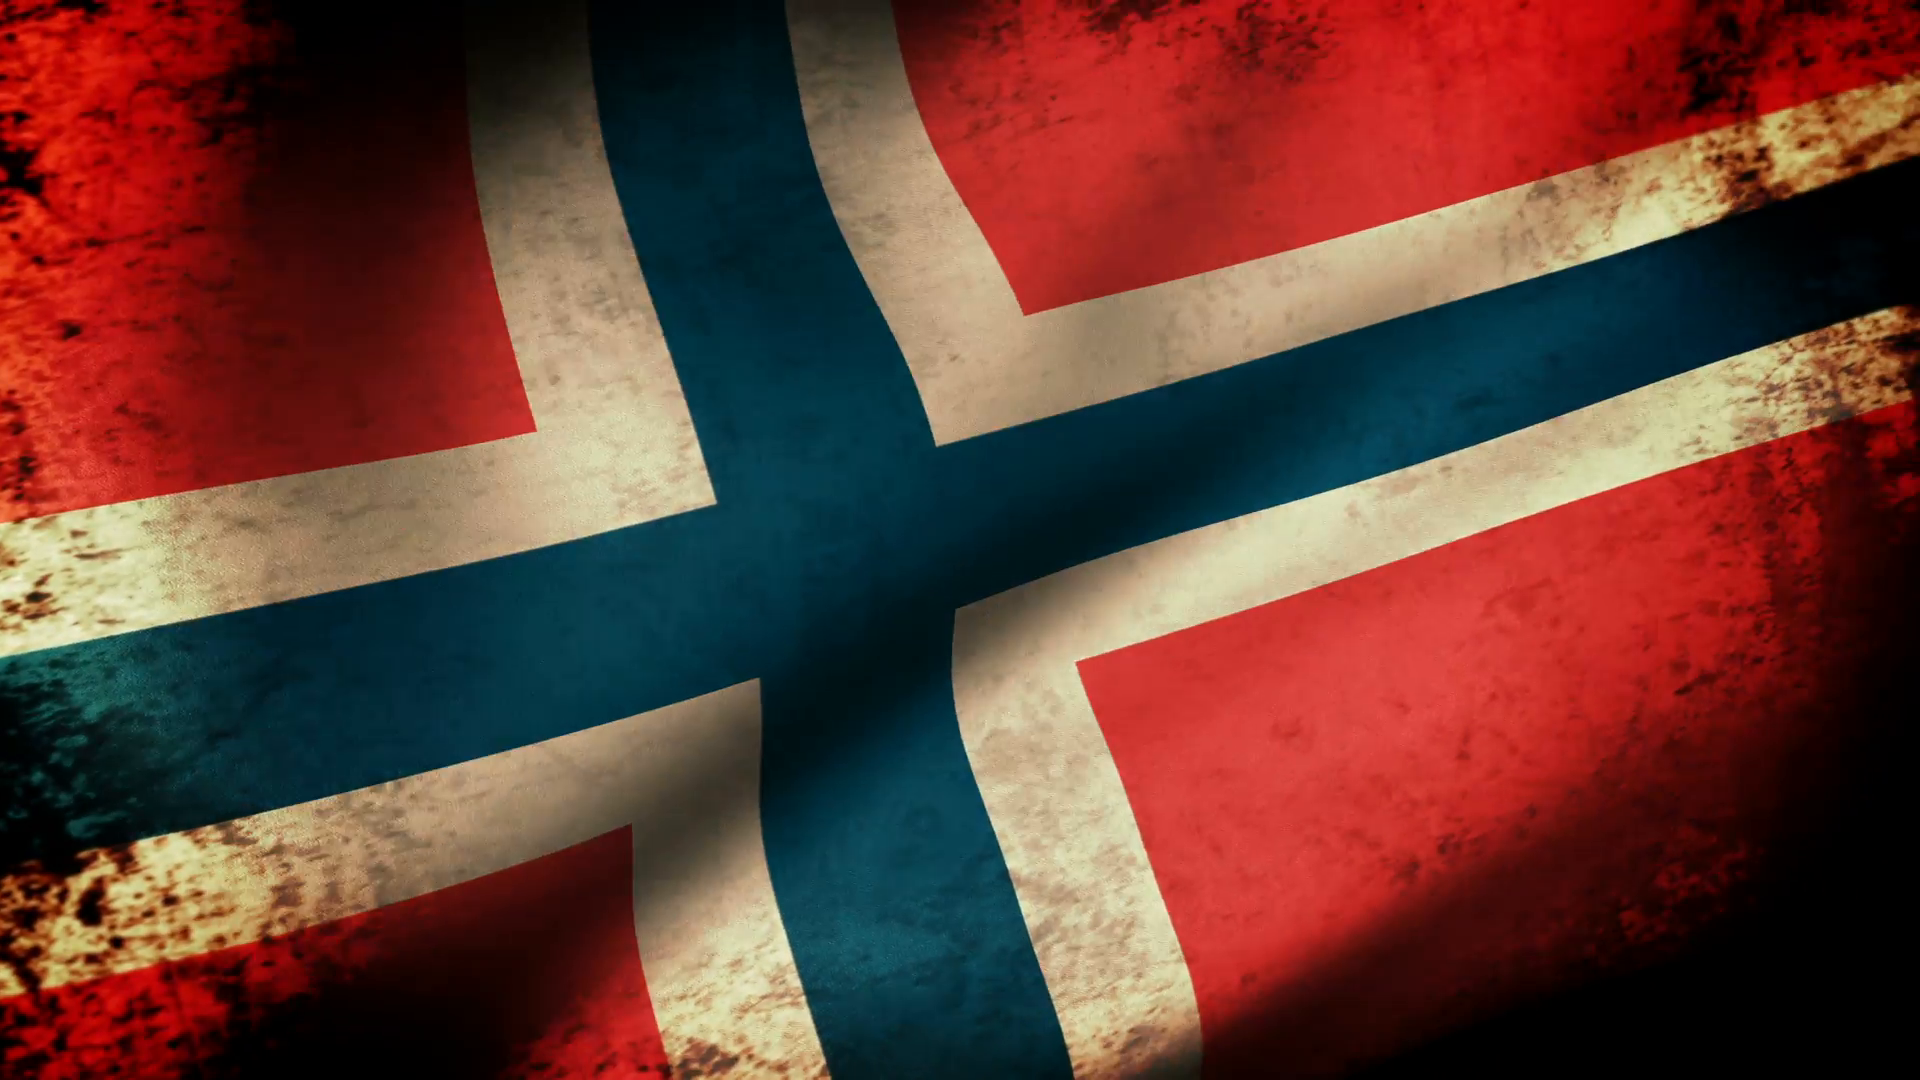 1920x1080 Free photo: Norway Grunge Flag - Photo, Parchment, Picture - Free ...